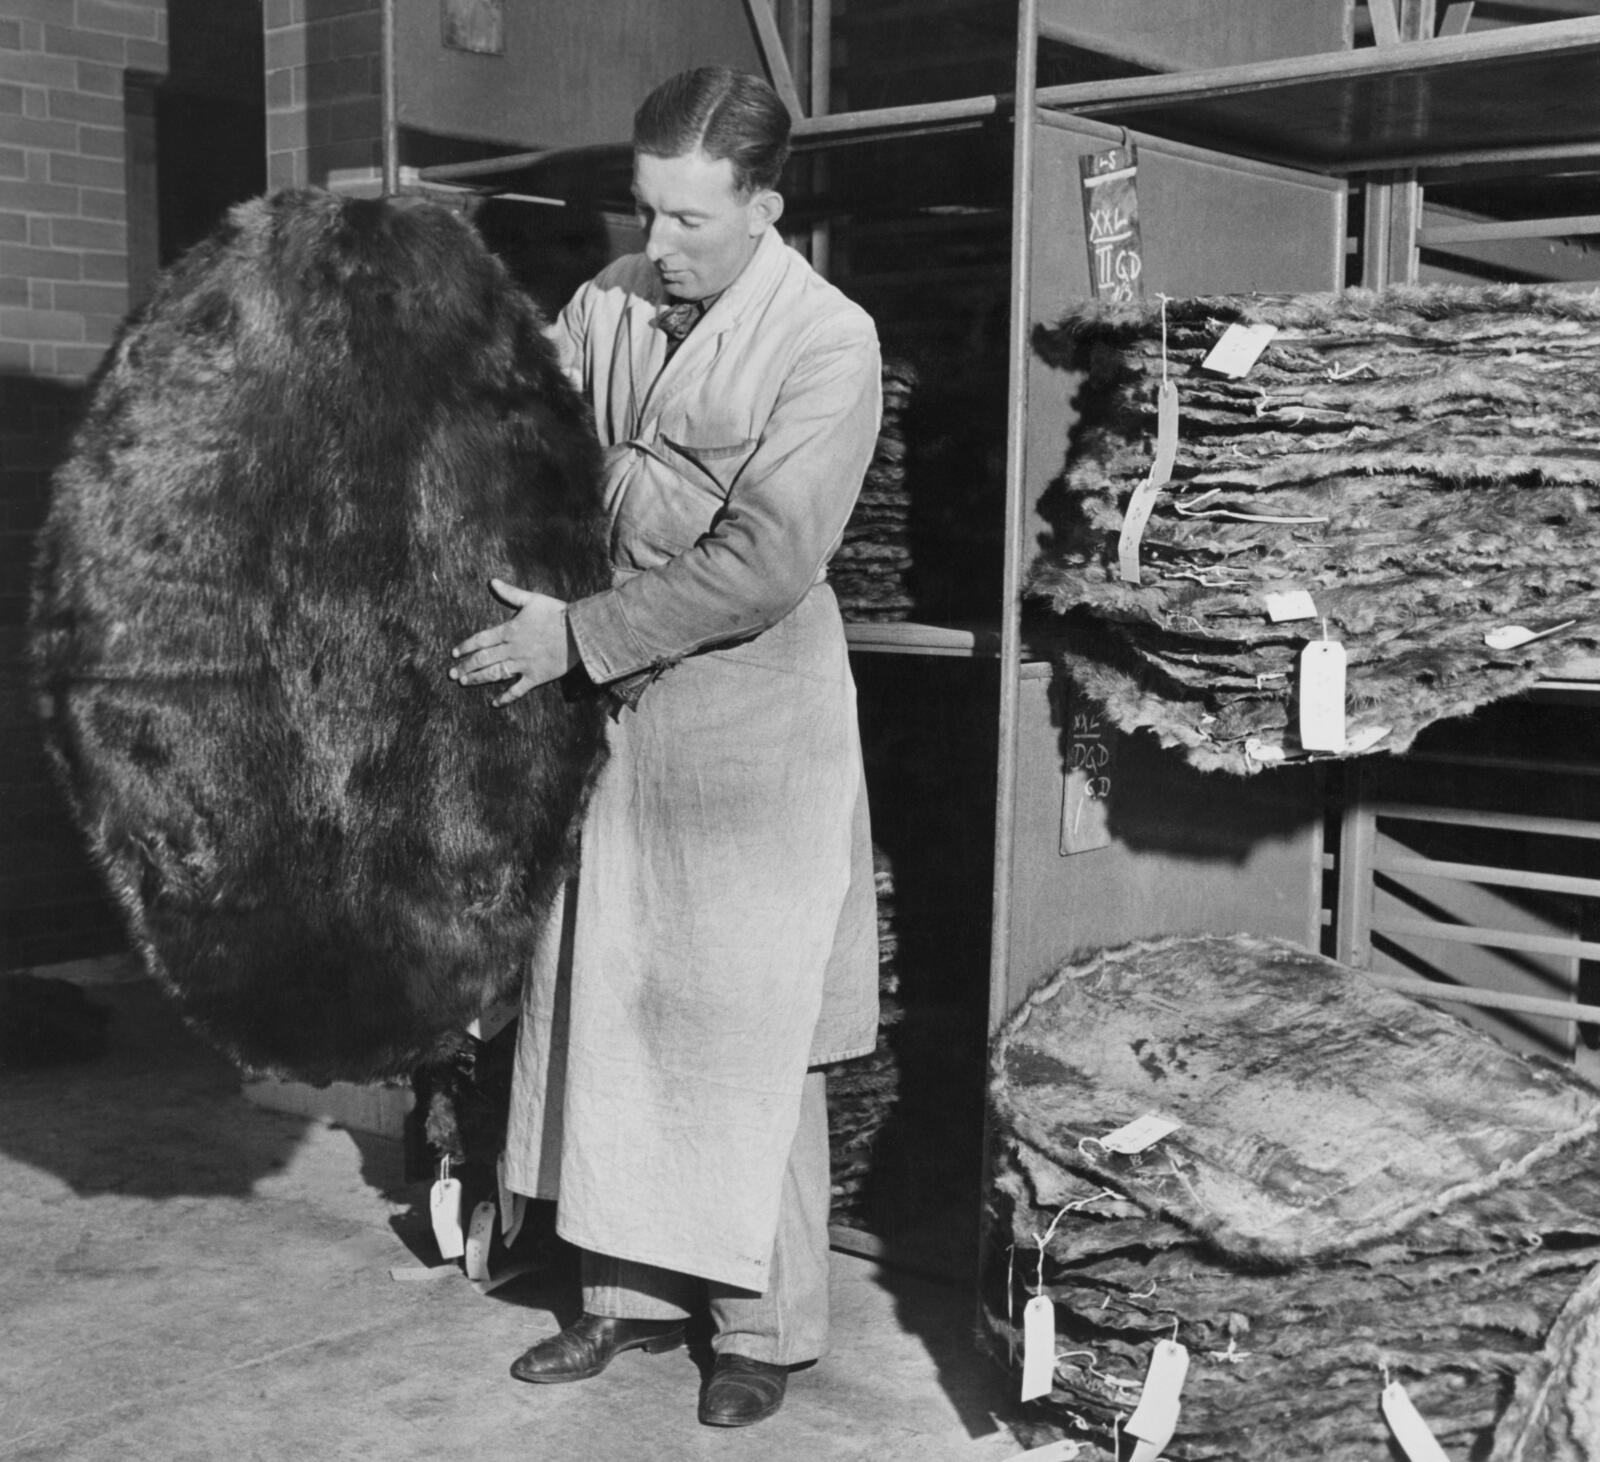 A worker inspects beaver pelts at HBC's York Factory in 1946 (George Konig/Keystone Features/Getty Images)